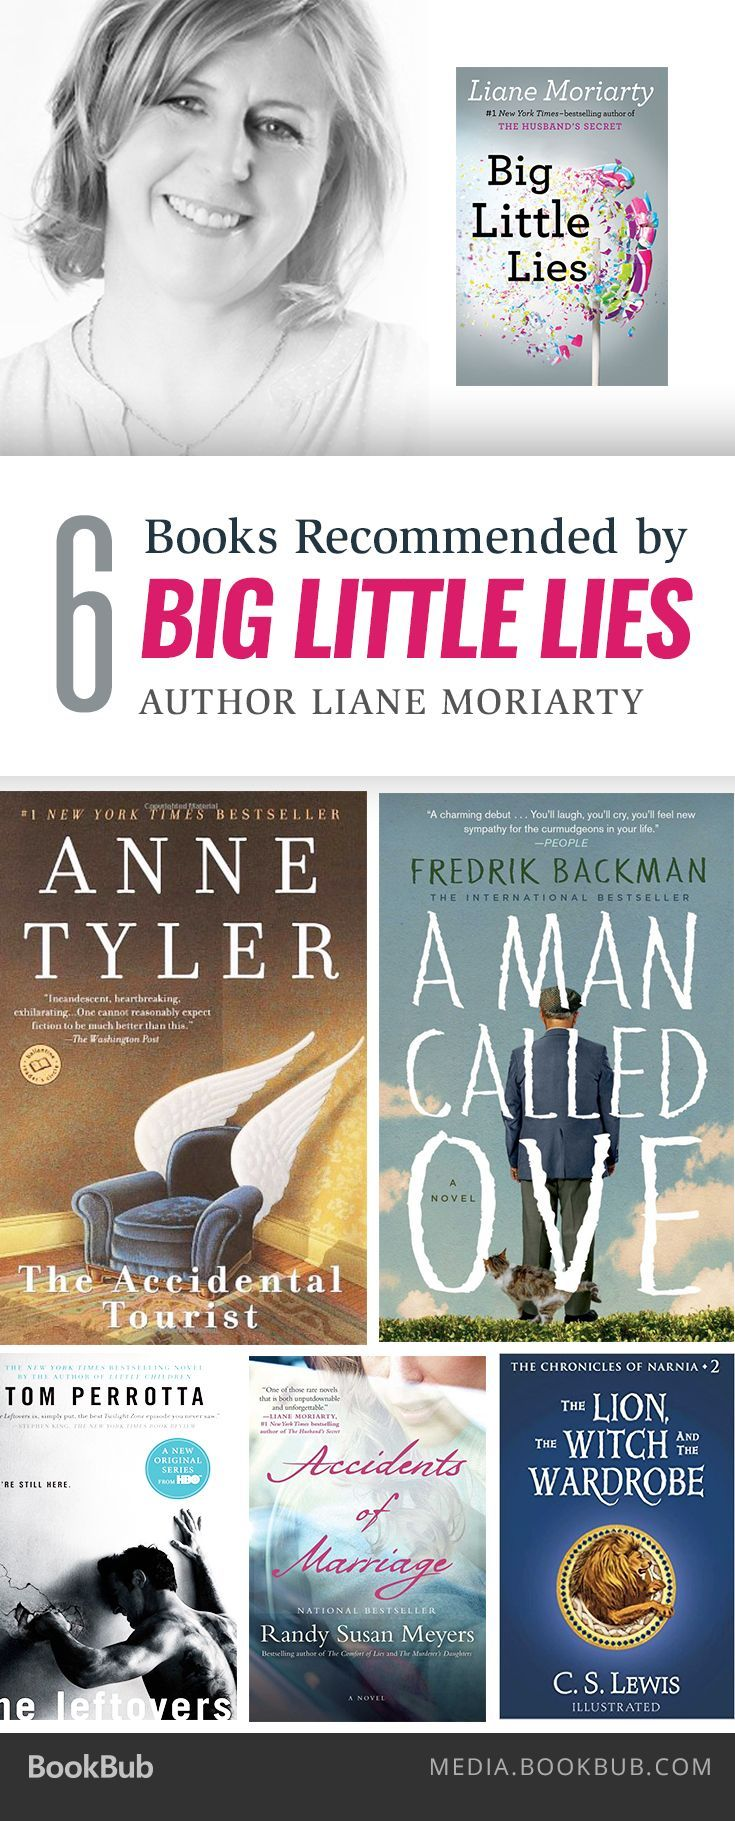 Liane Moriarty, author of Big Little Lies, recommends these 6 captivating books.